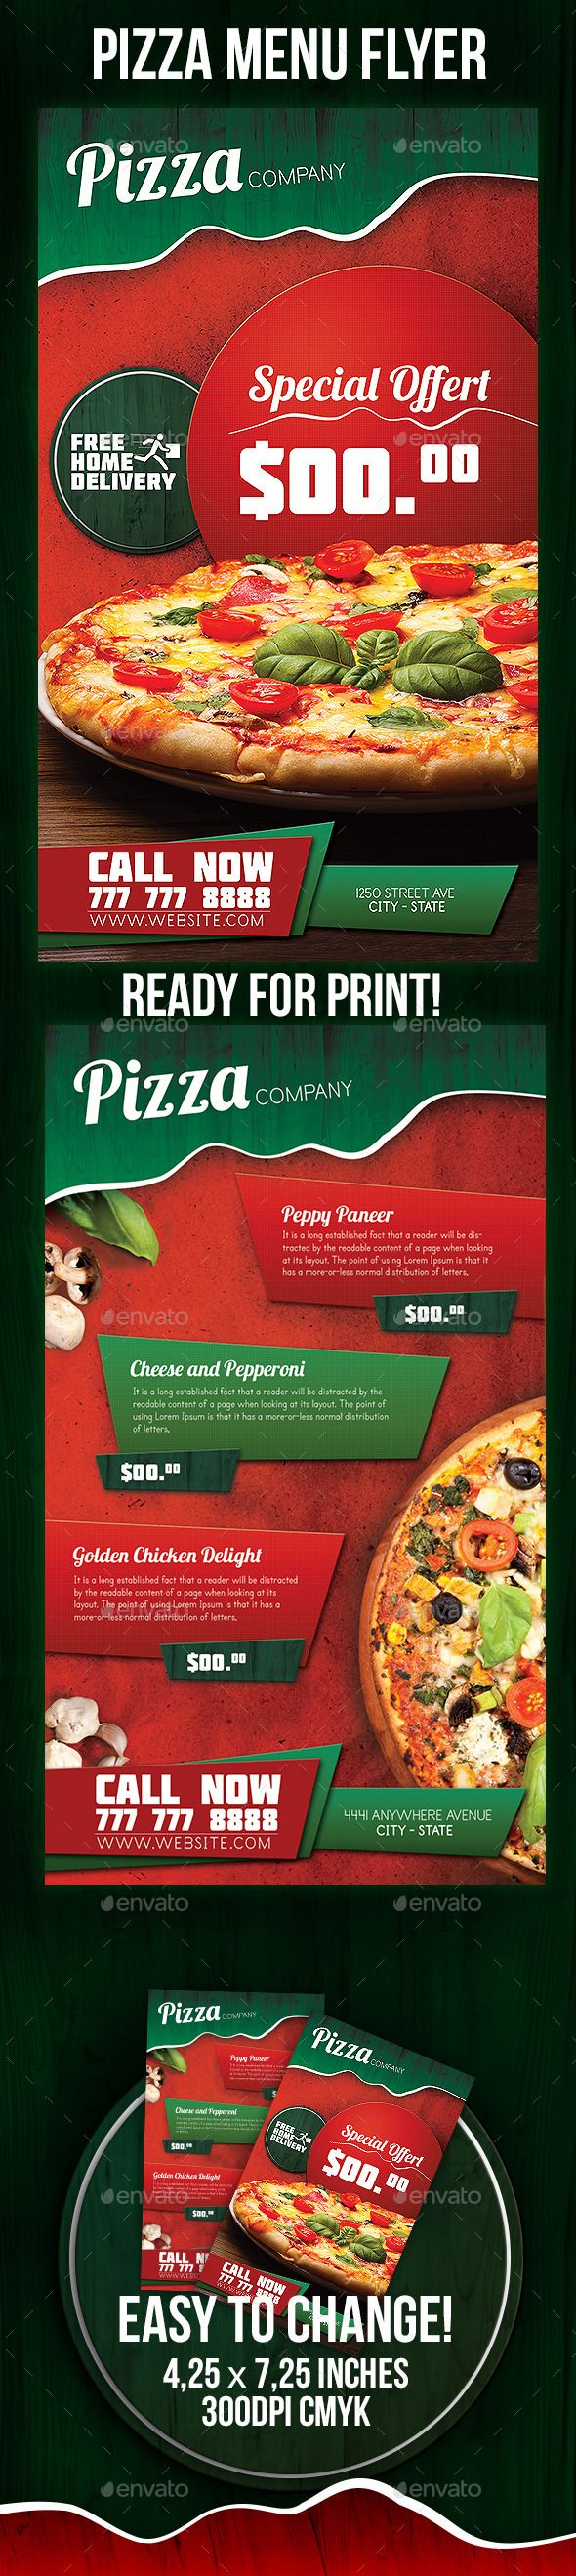 Pizza Menu Flyer Template #design Download: http://graphicriver.net/item/pizza-menu-flyer/9332720?ref=ksioks